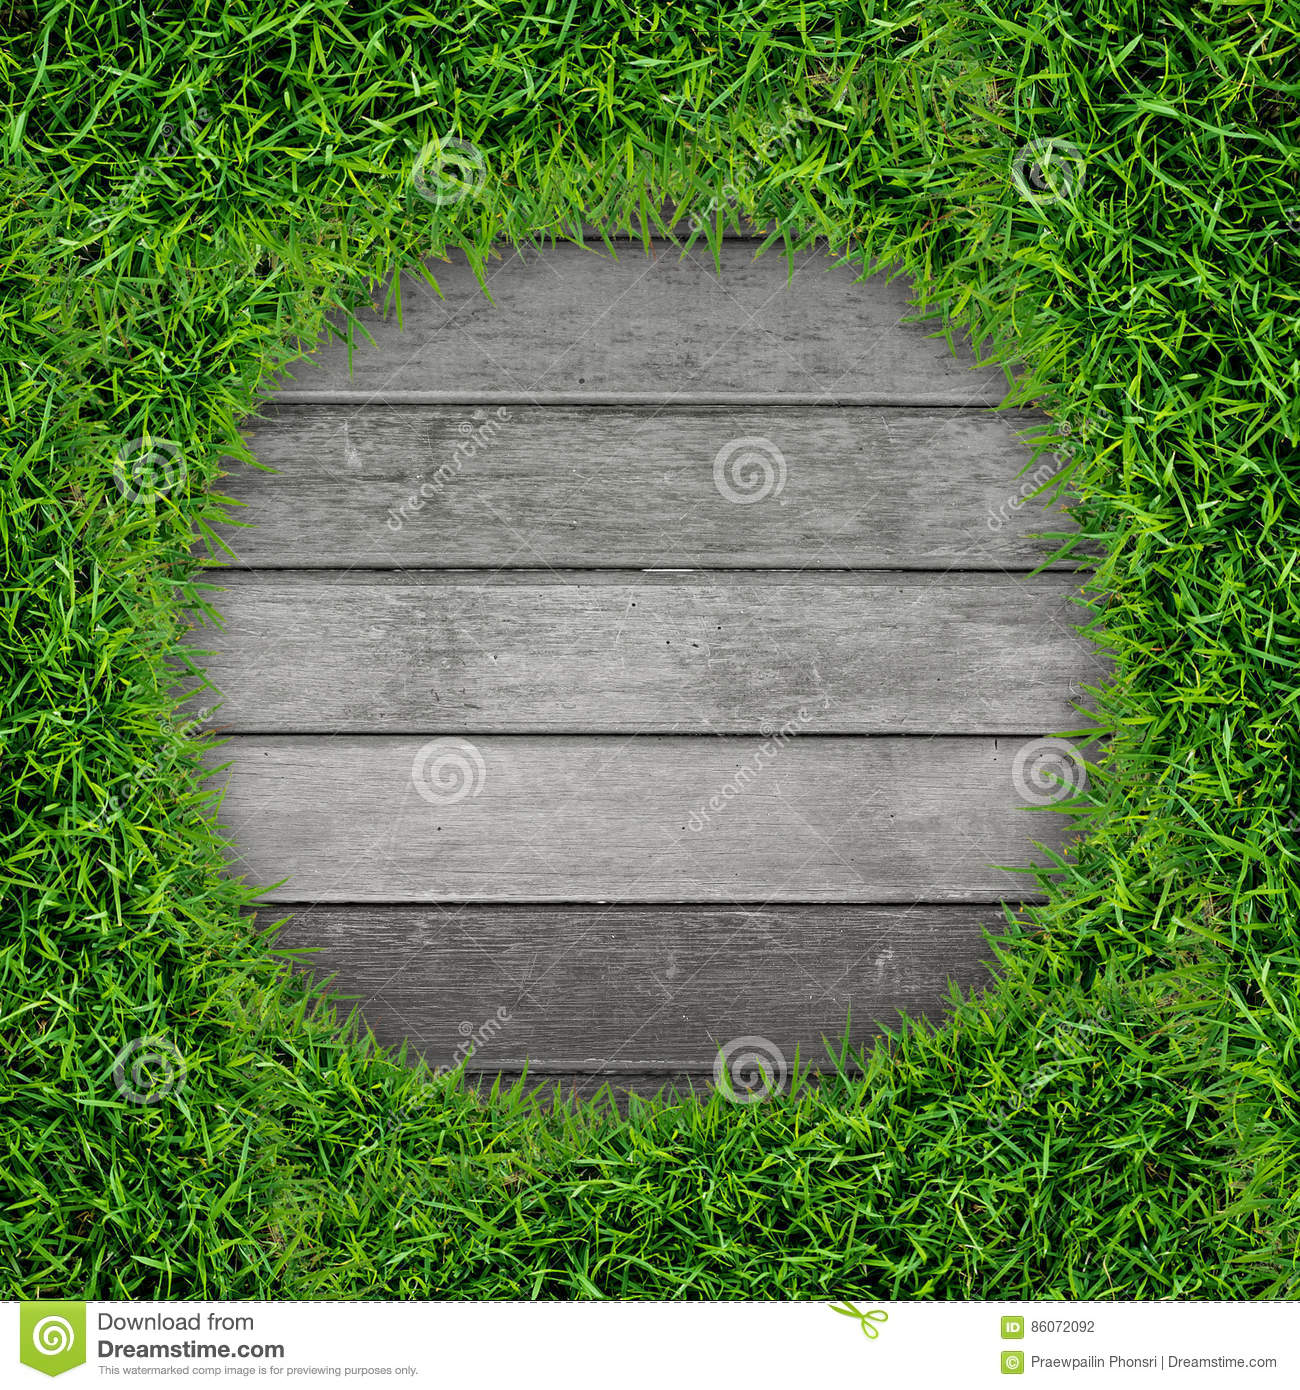 Green grass frame and vintage wood background.